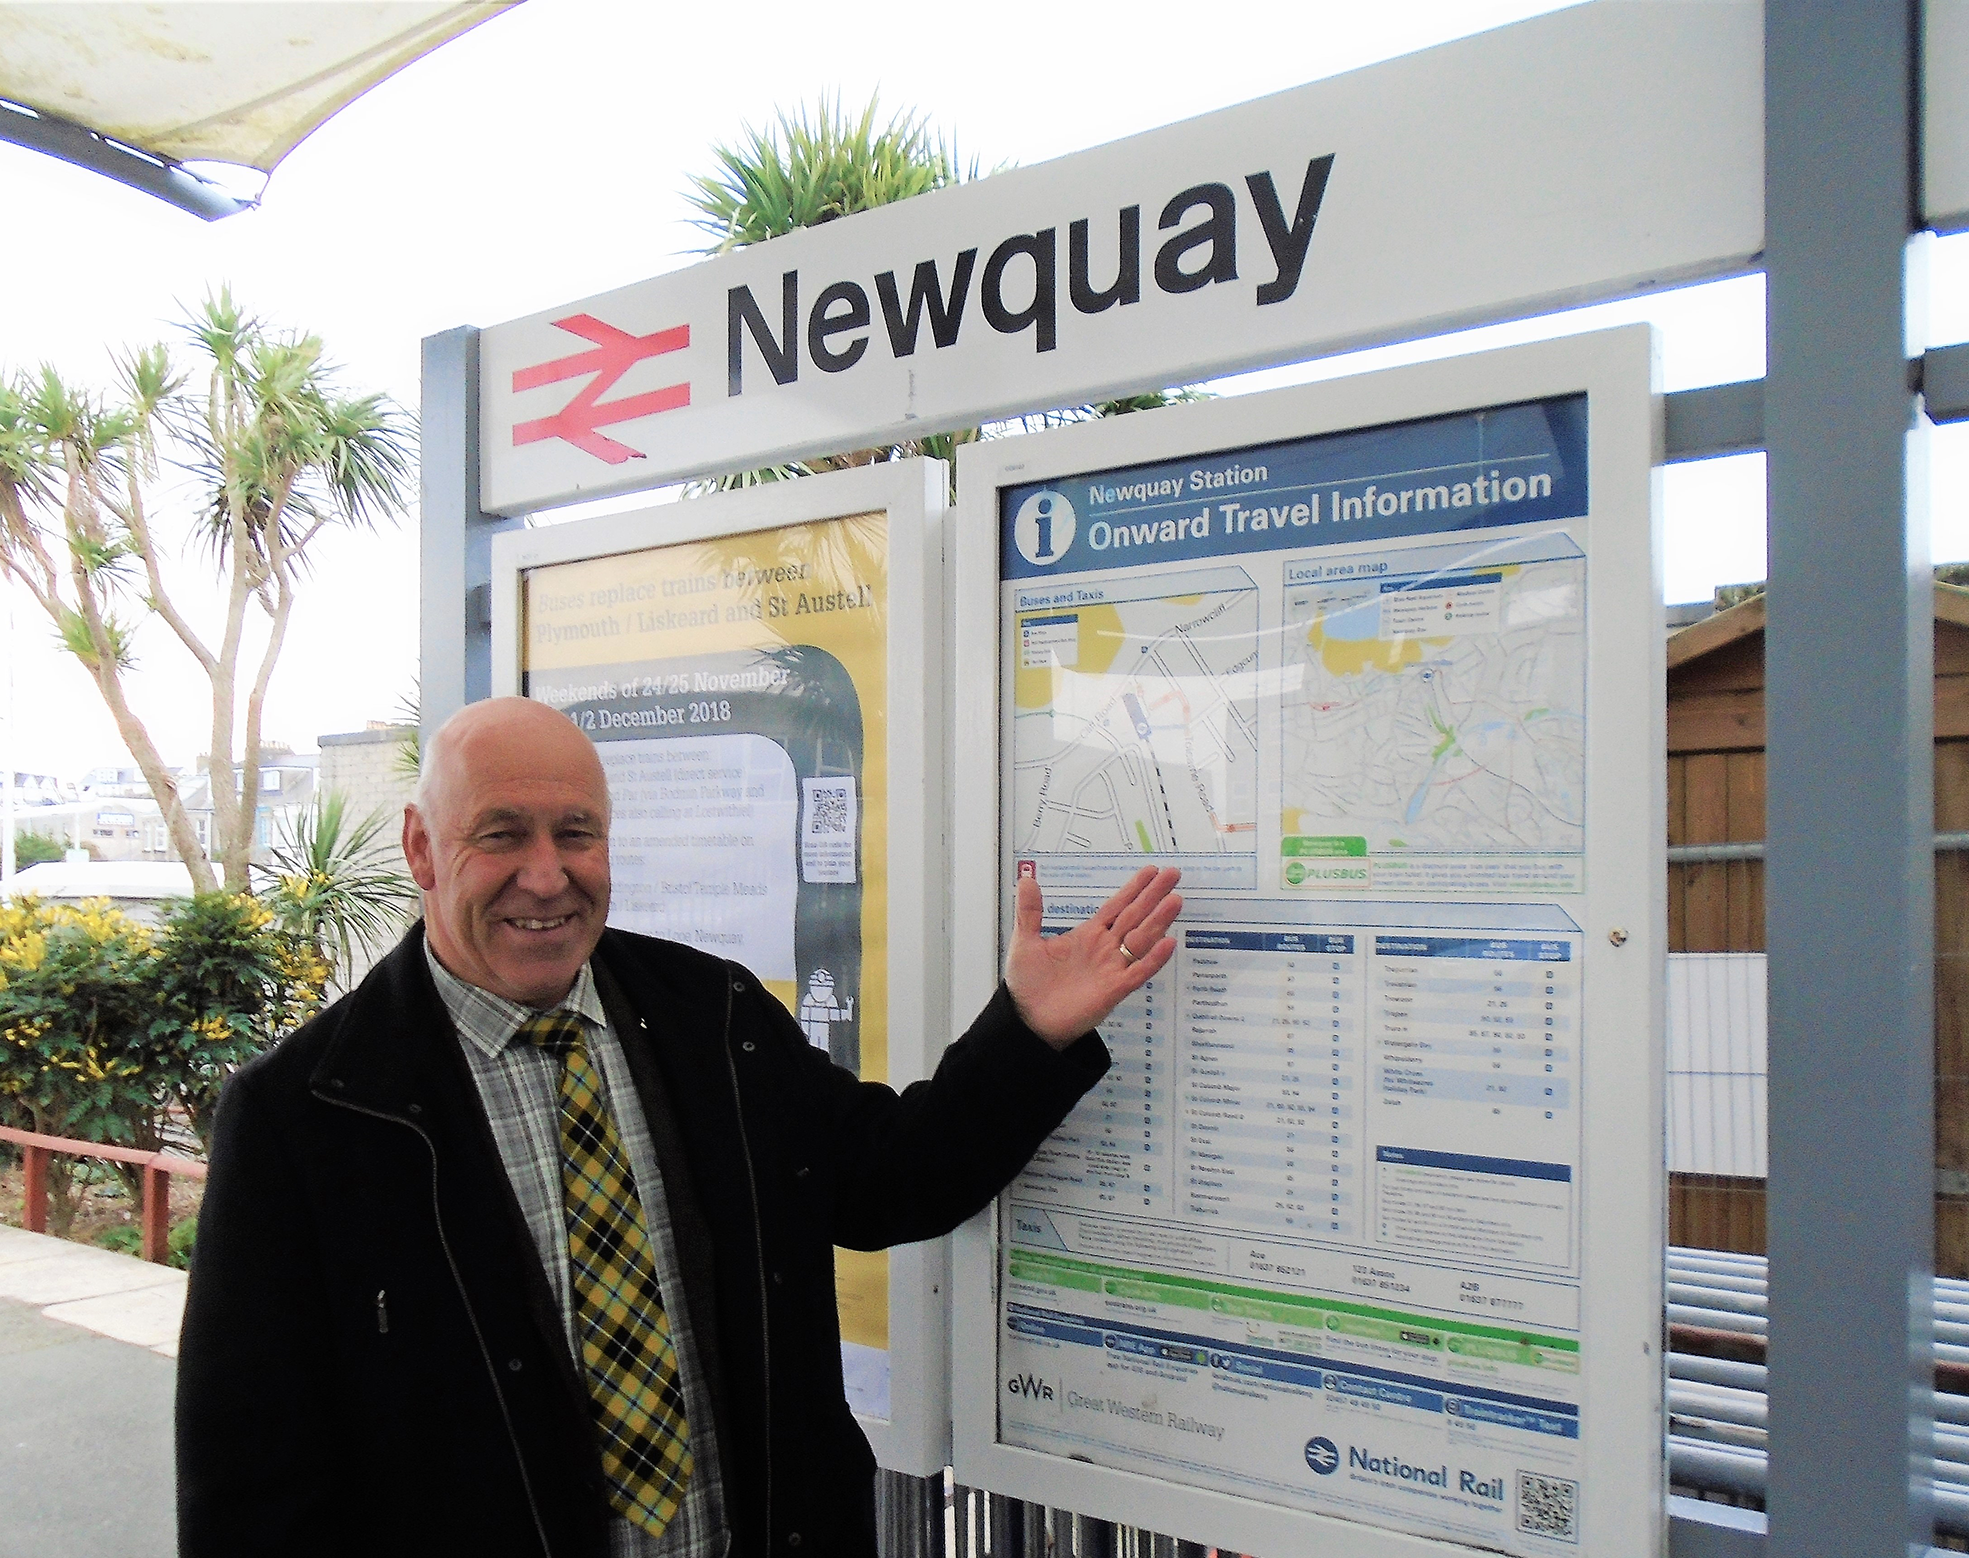 Cornwall set for two trains per hour on the mainline